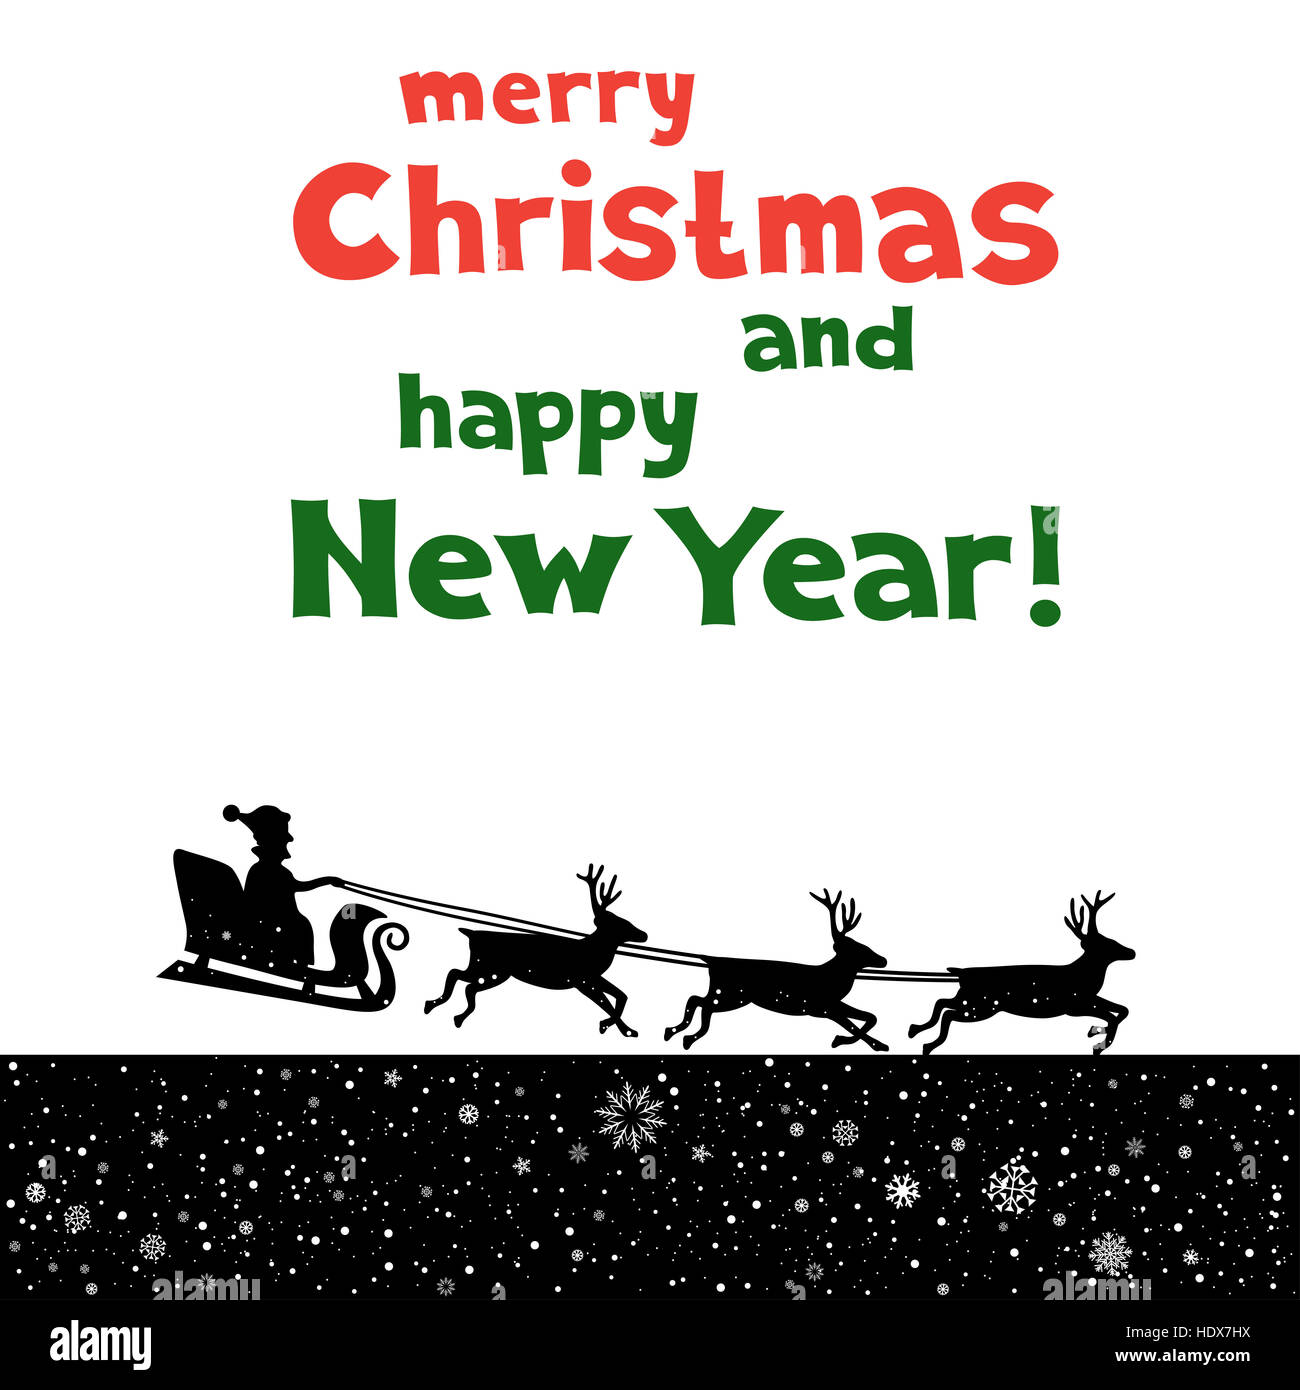 The Christmas Greetings From Santa Which Fly To Give Gifts Black